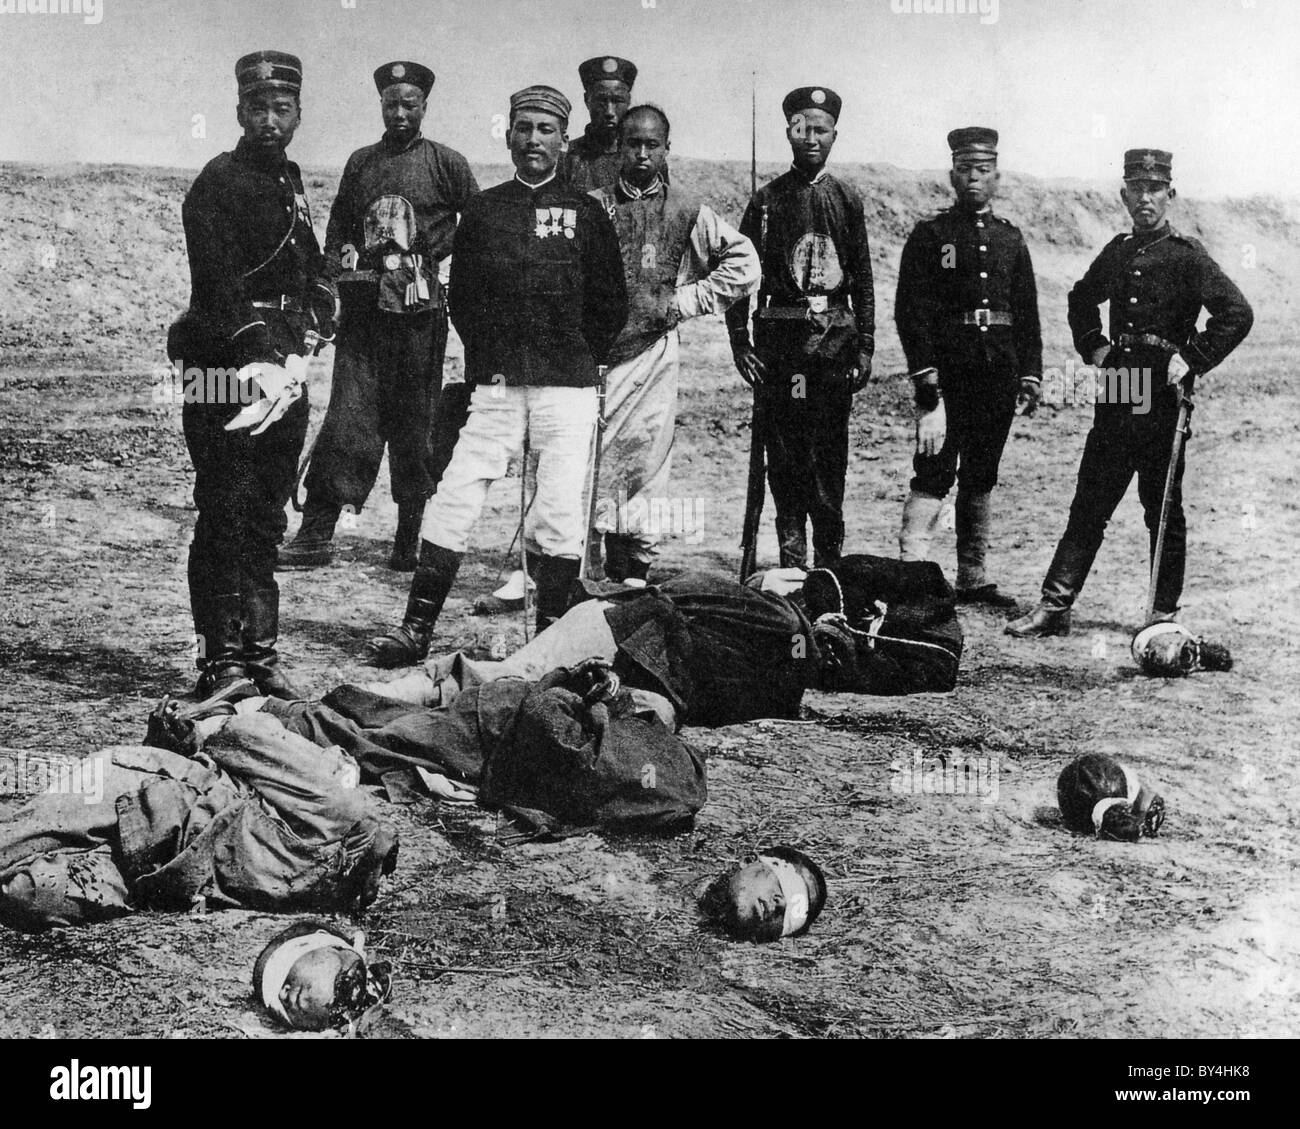 BOXER REBELLION Chinese executioners  with their victims in a 1900 photo with Japanese soldiers in the background - Stock Image